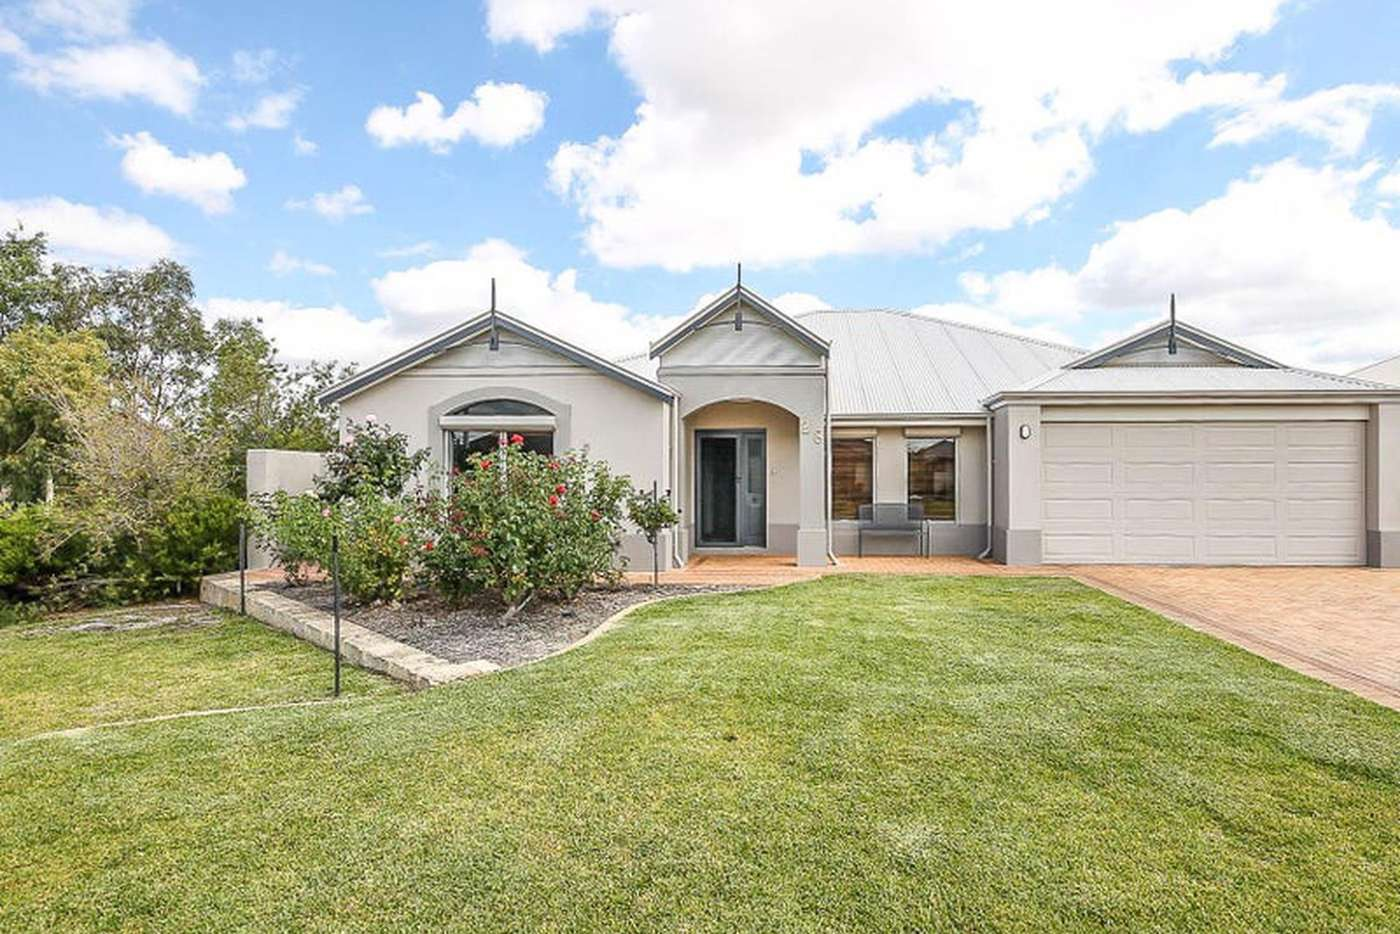 Main view of Homely house listing, 28 Rainsby Crescent, Ellenbrook WA 6069